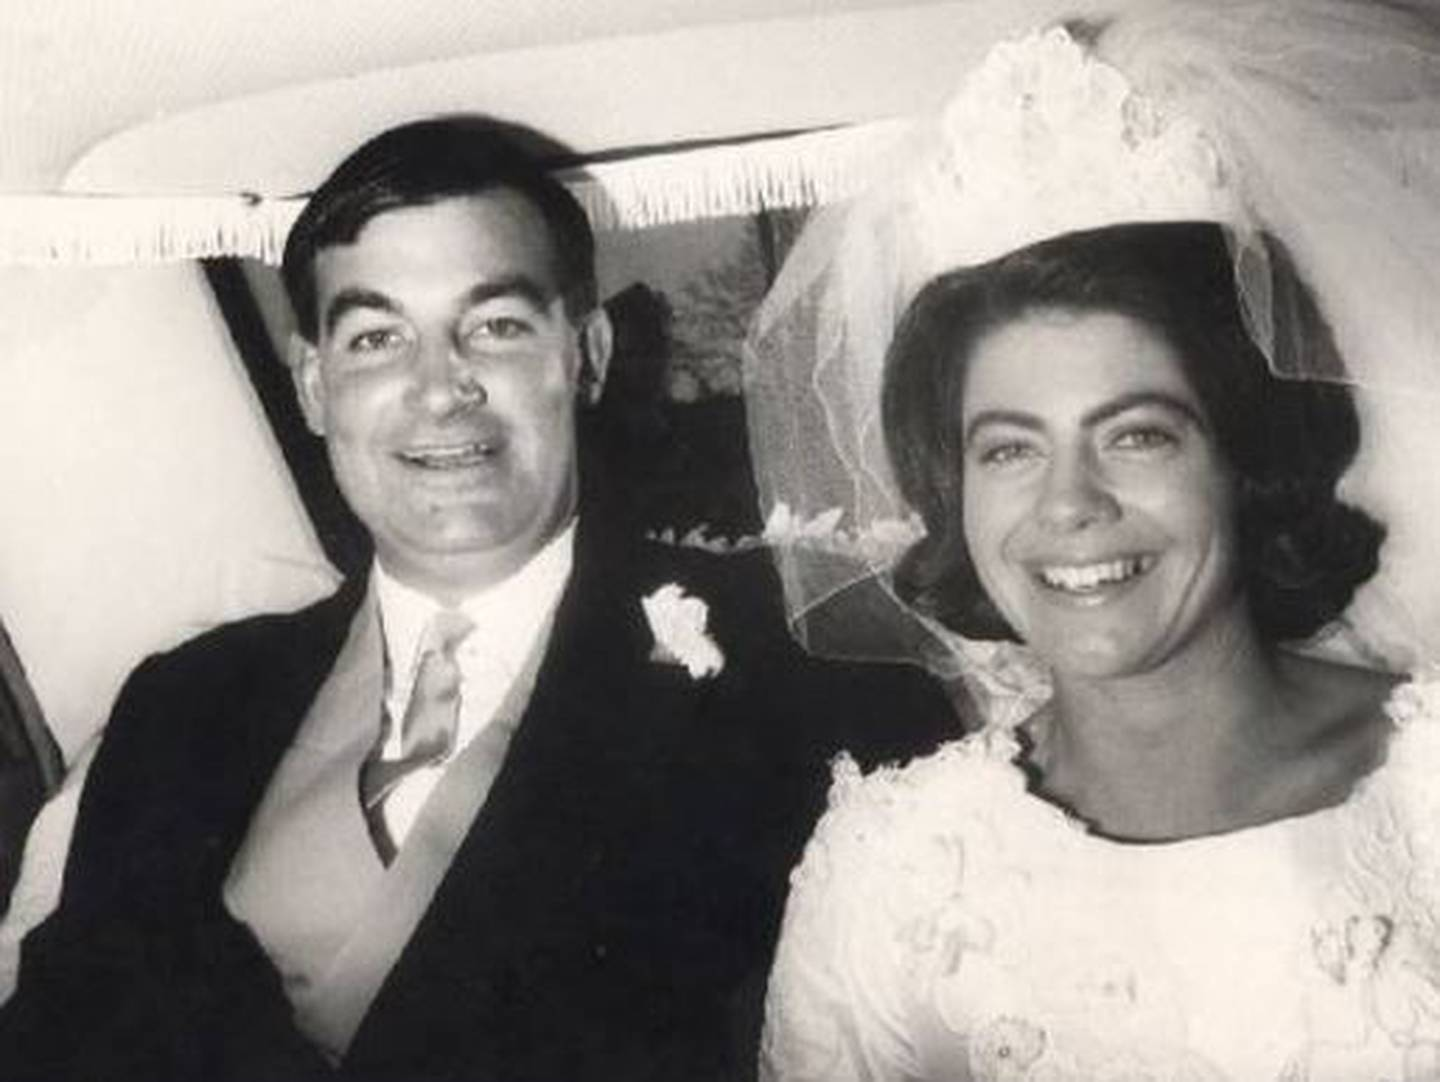 Harvey and Jeanette Crewe were shot dead in their Pukekawa farmhouse in 1970 then dumped in the Waikato River. Photo / Supplied